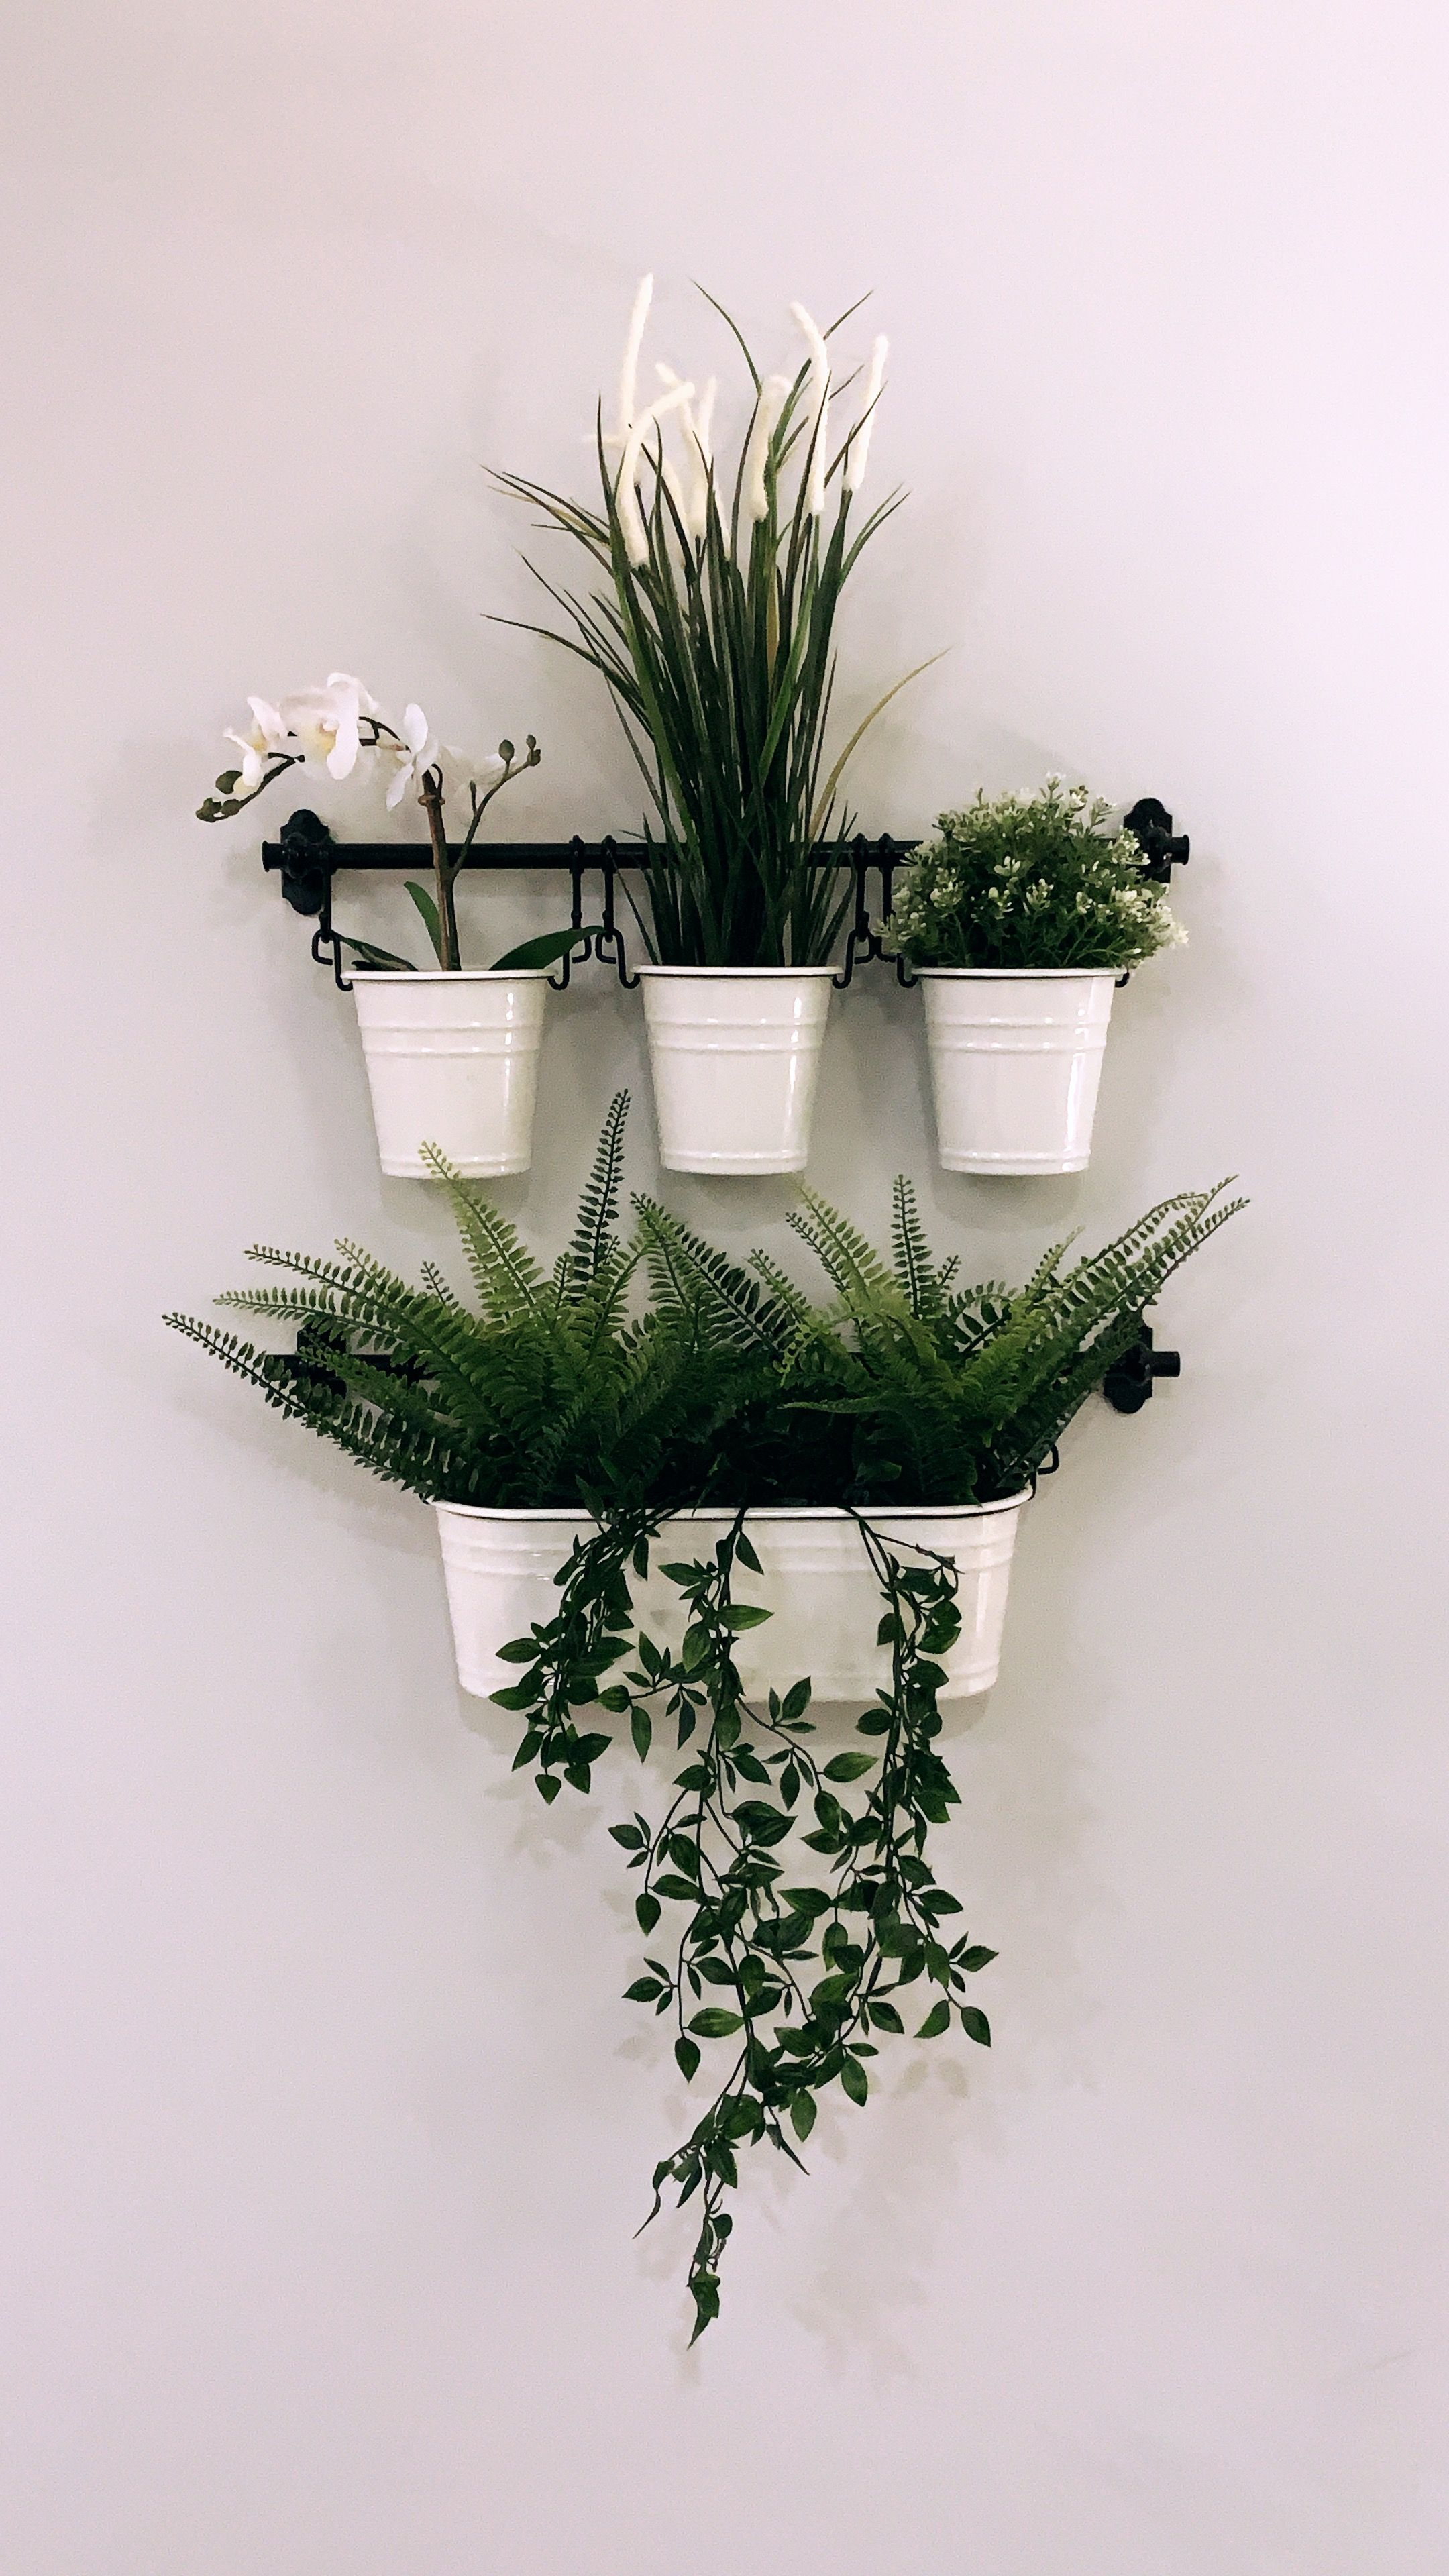 Ikea Creations Wall Hanging Planters Ikea Hanging Planter